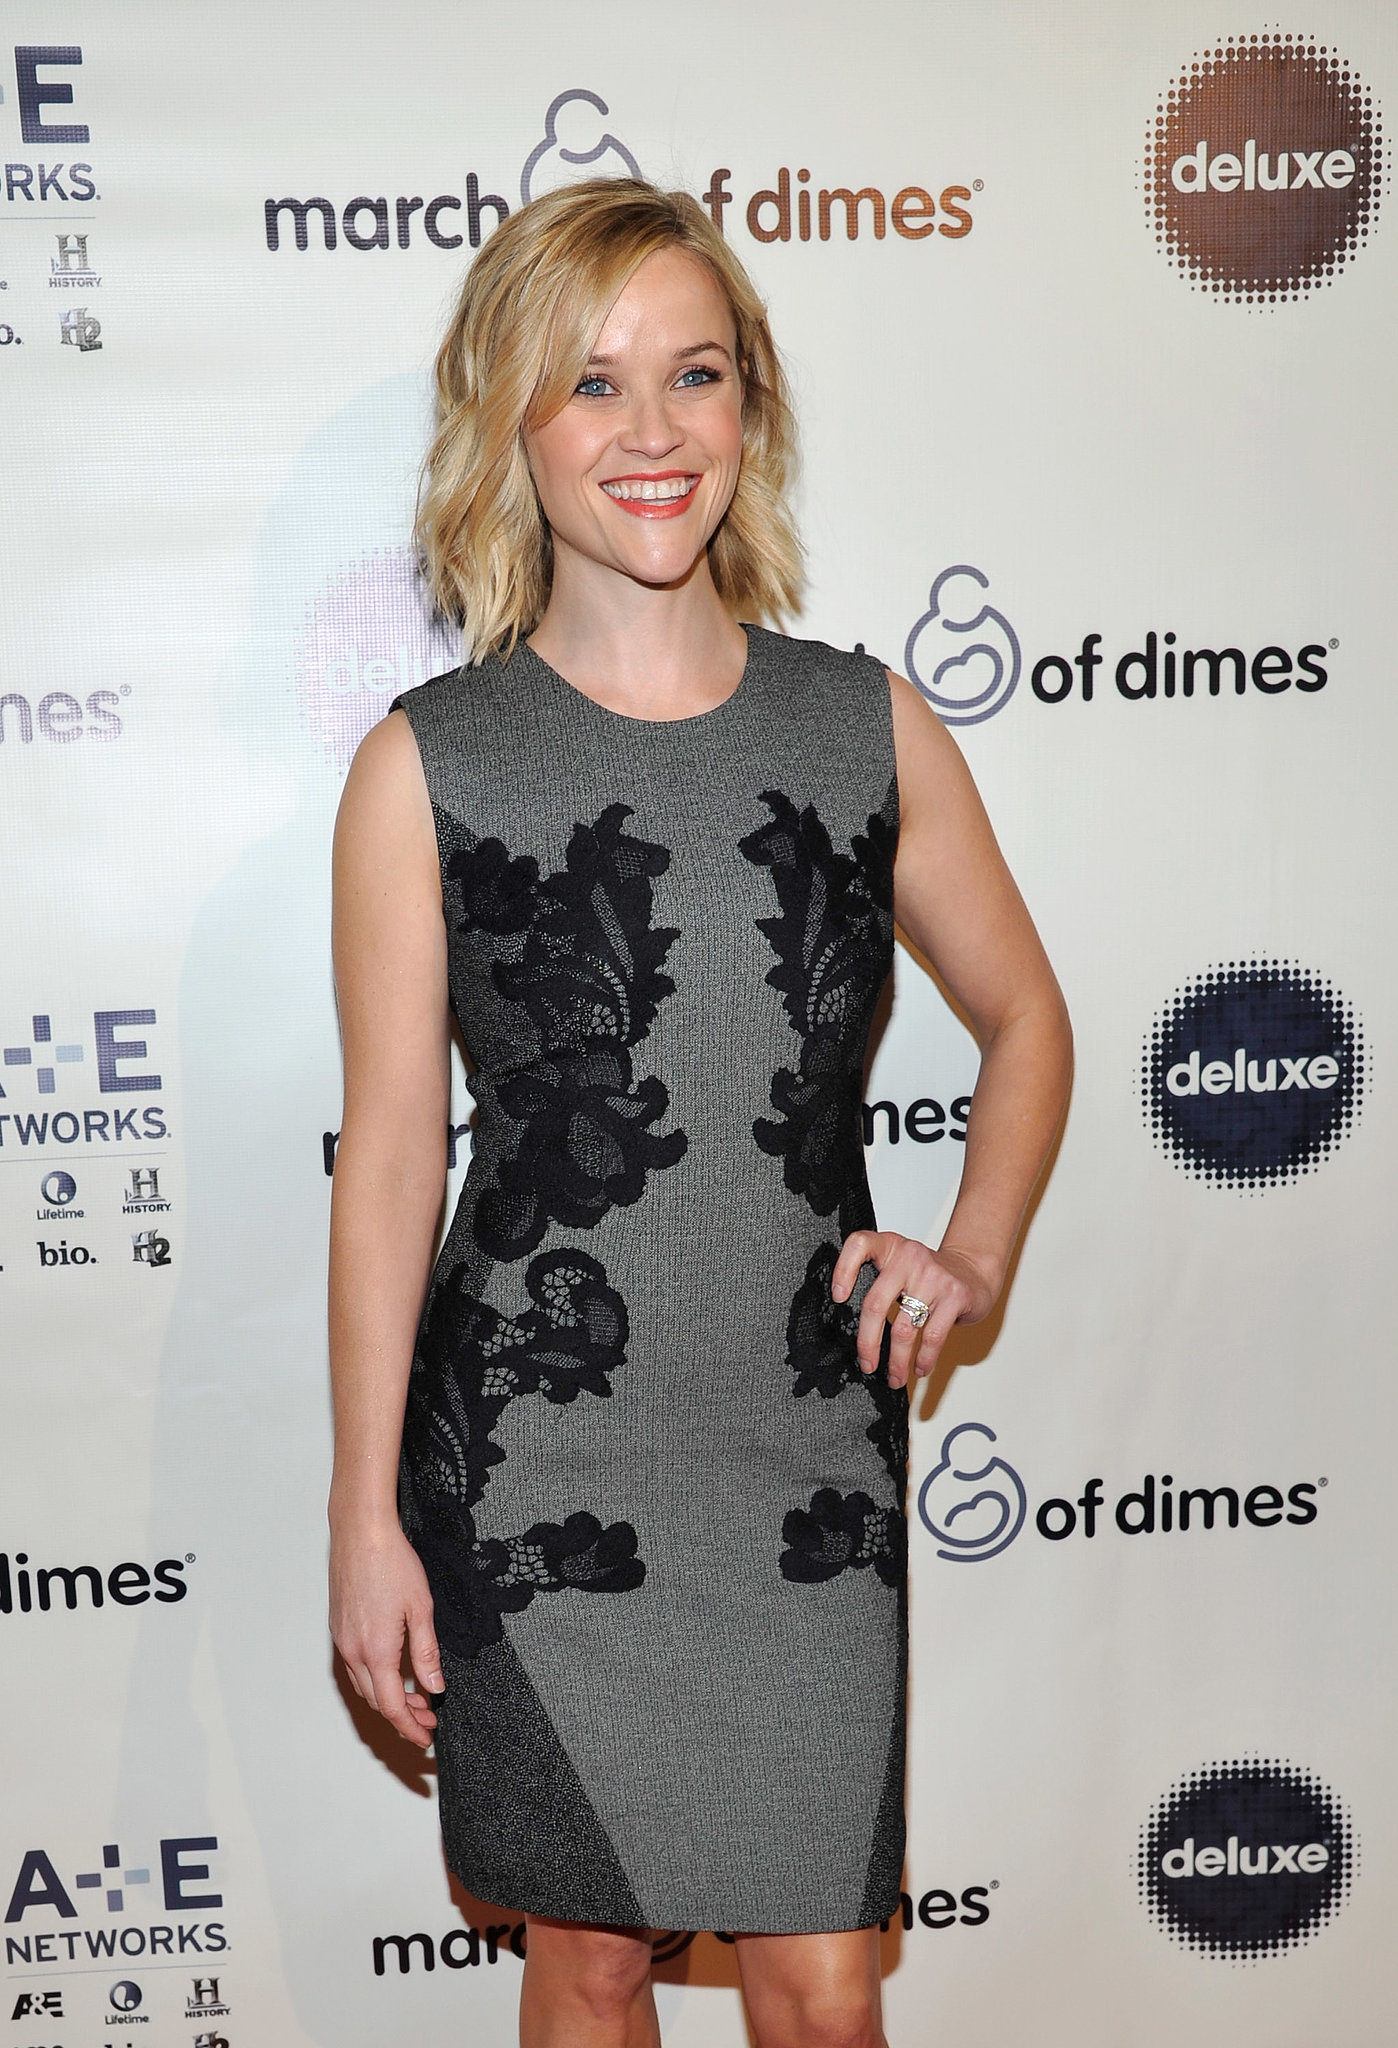 Reese Witherspoon was all smiles at the event.